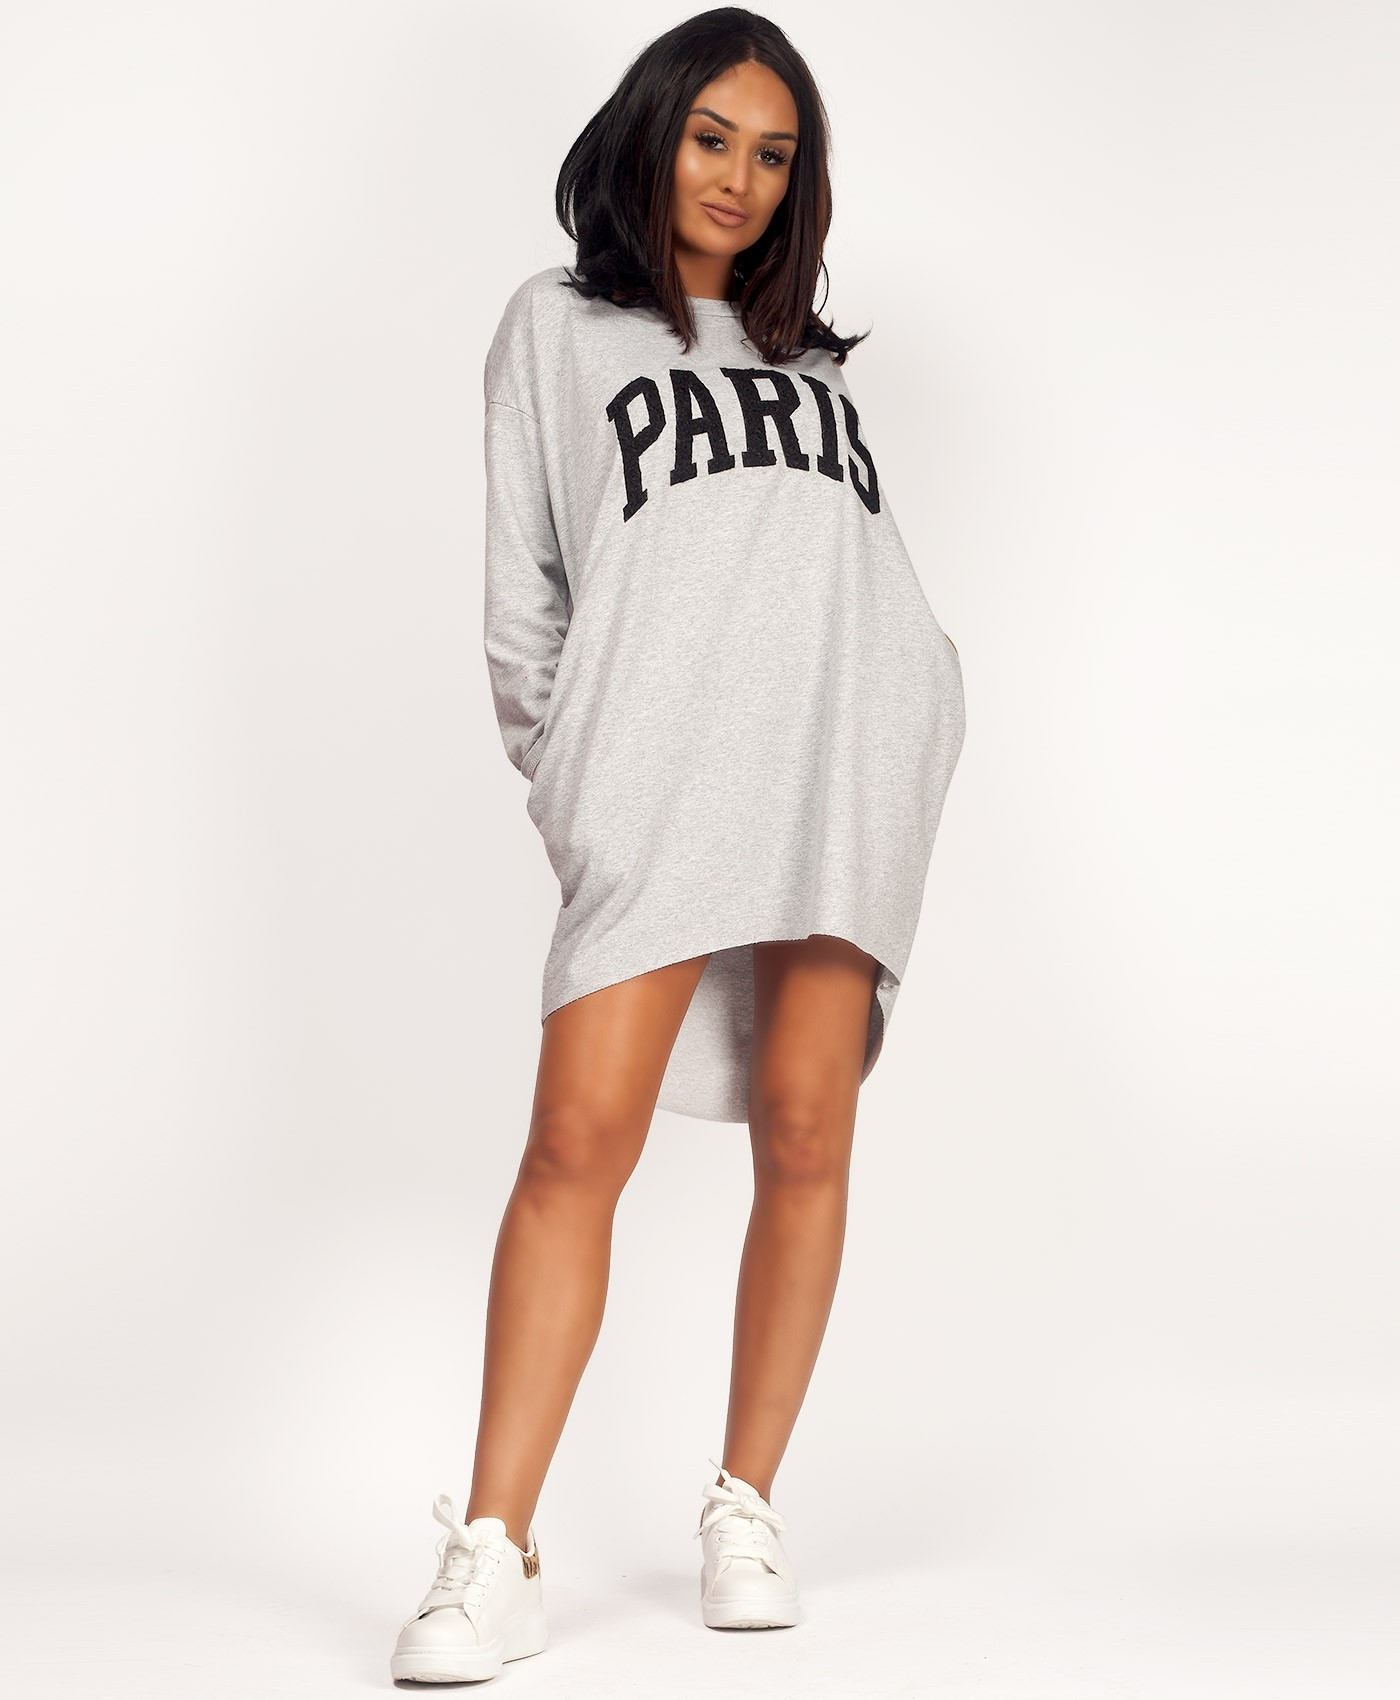 Grey-Paris-Applique-Oversize-Batwing-Pocket-Top-Dress-1